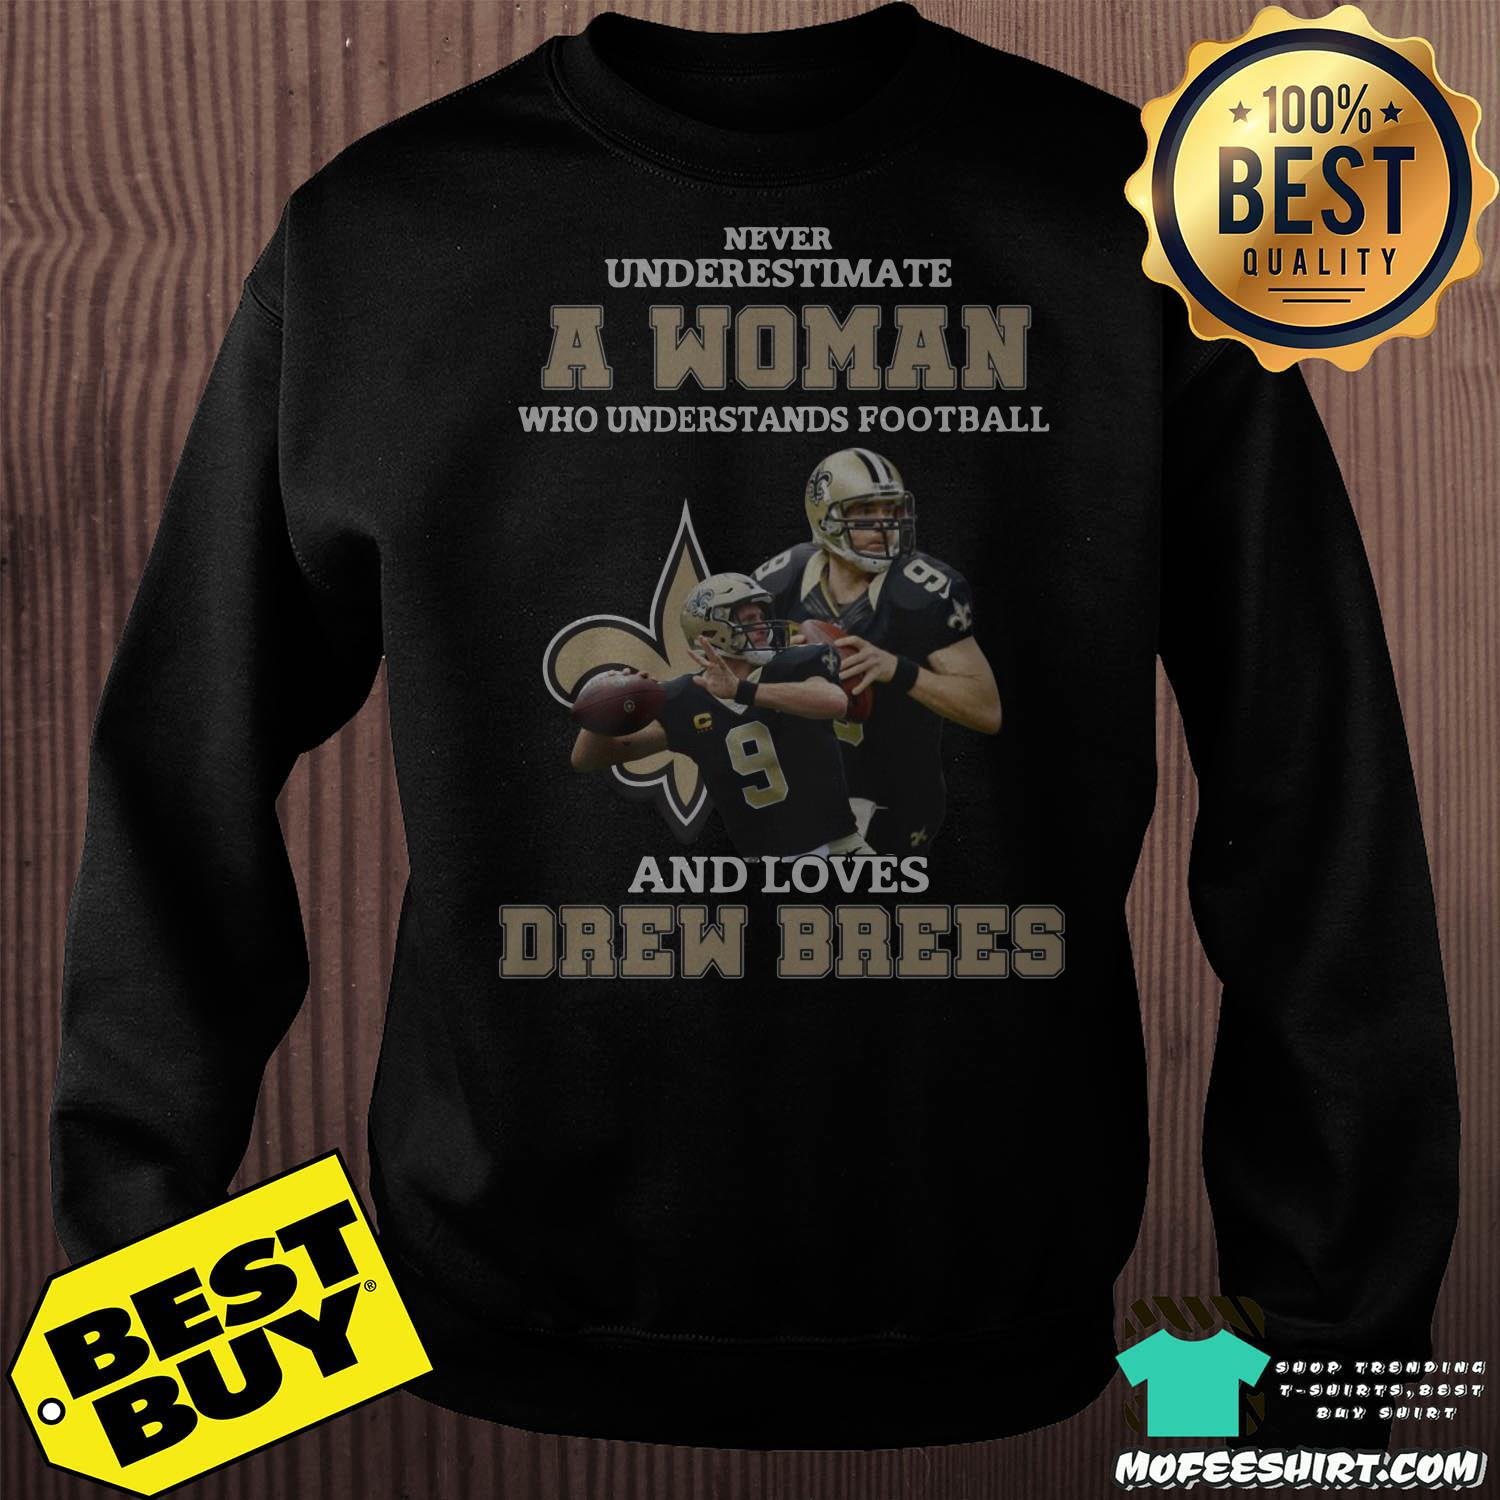 never underestimate a woman who understands football and loves drew brees sweatshirt - Never underestimate A Woman Who Understands Football And Loves Drew Brees Shirt